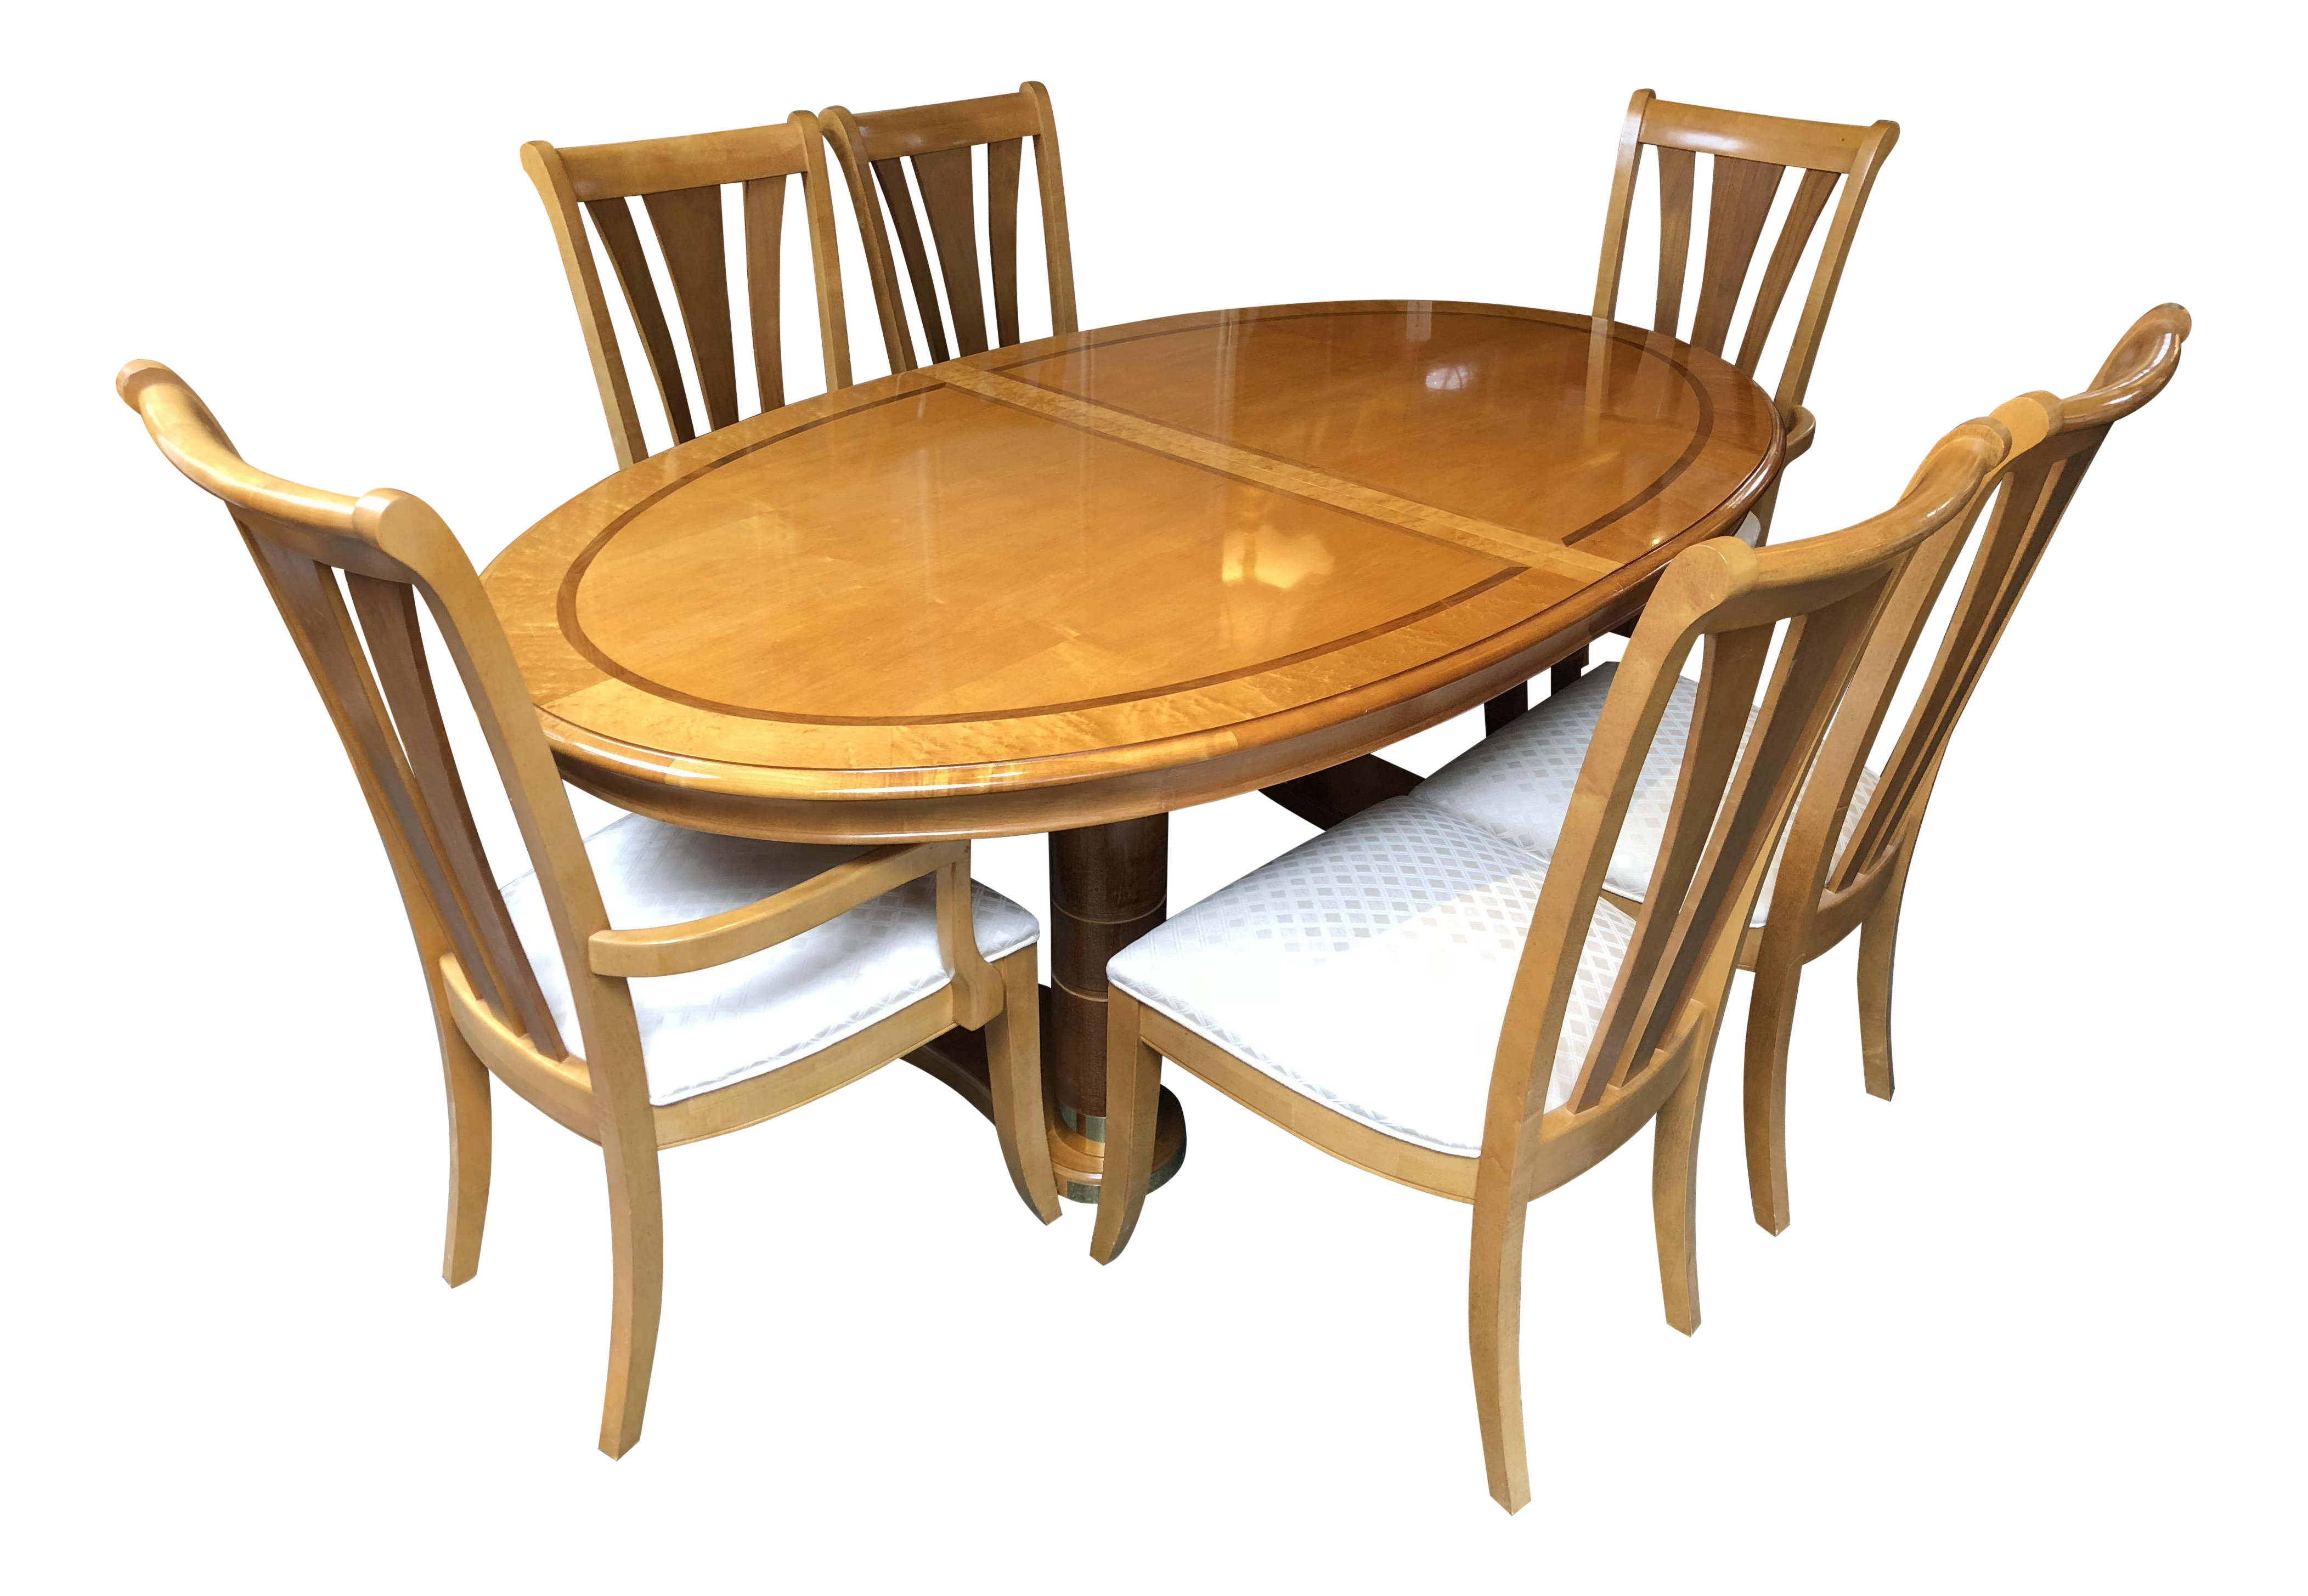 Transitional Stanley Furniture Birds Eye Maple And Walnut Inlay Dining Set    7 Pieces For Sale